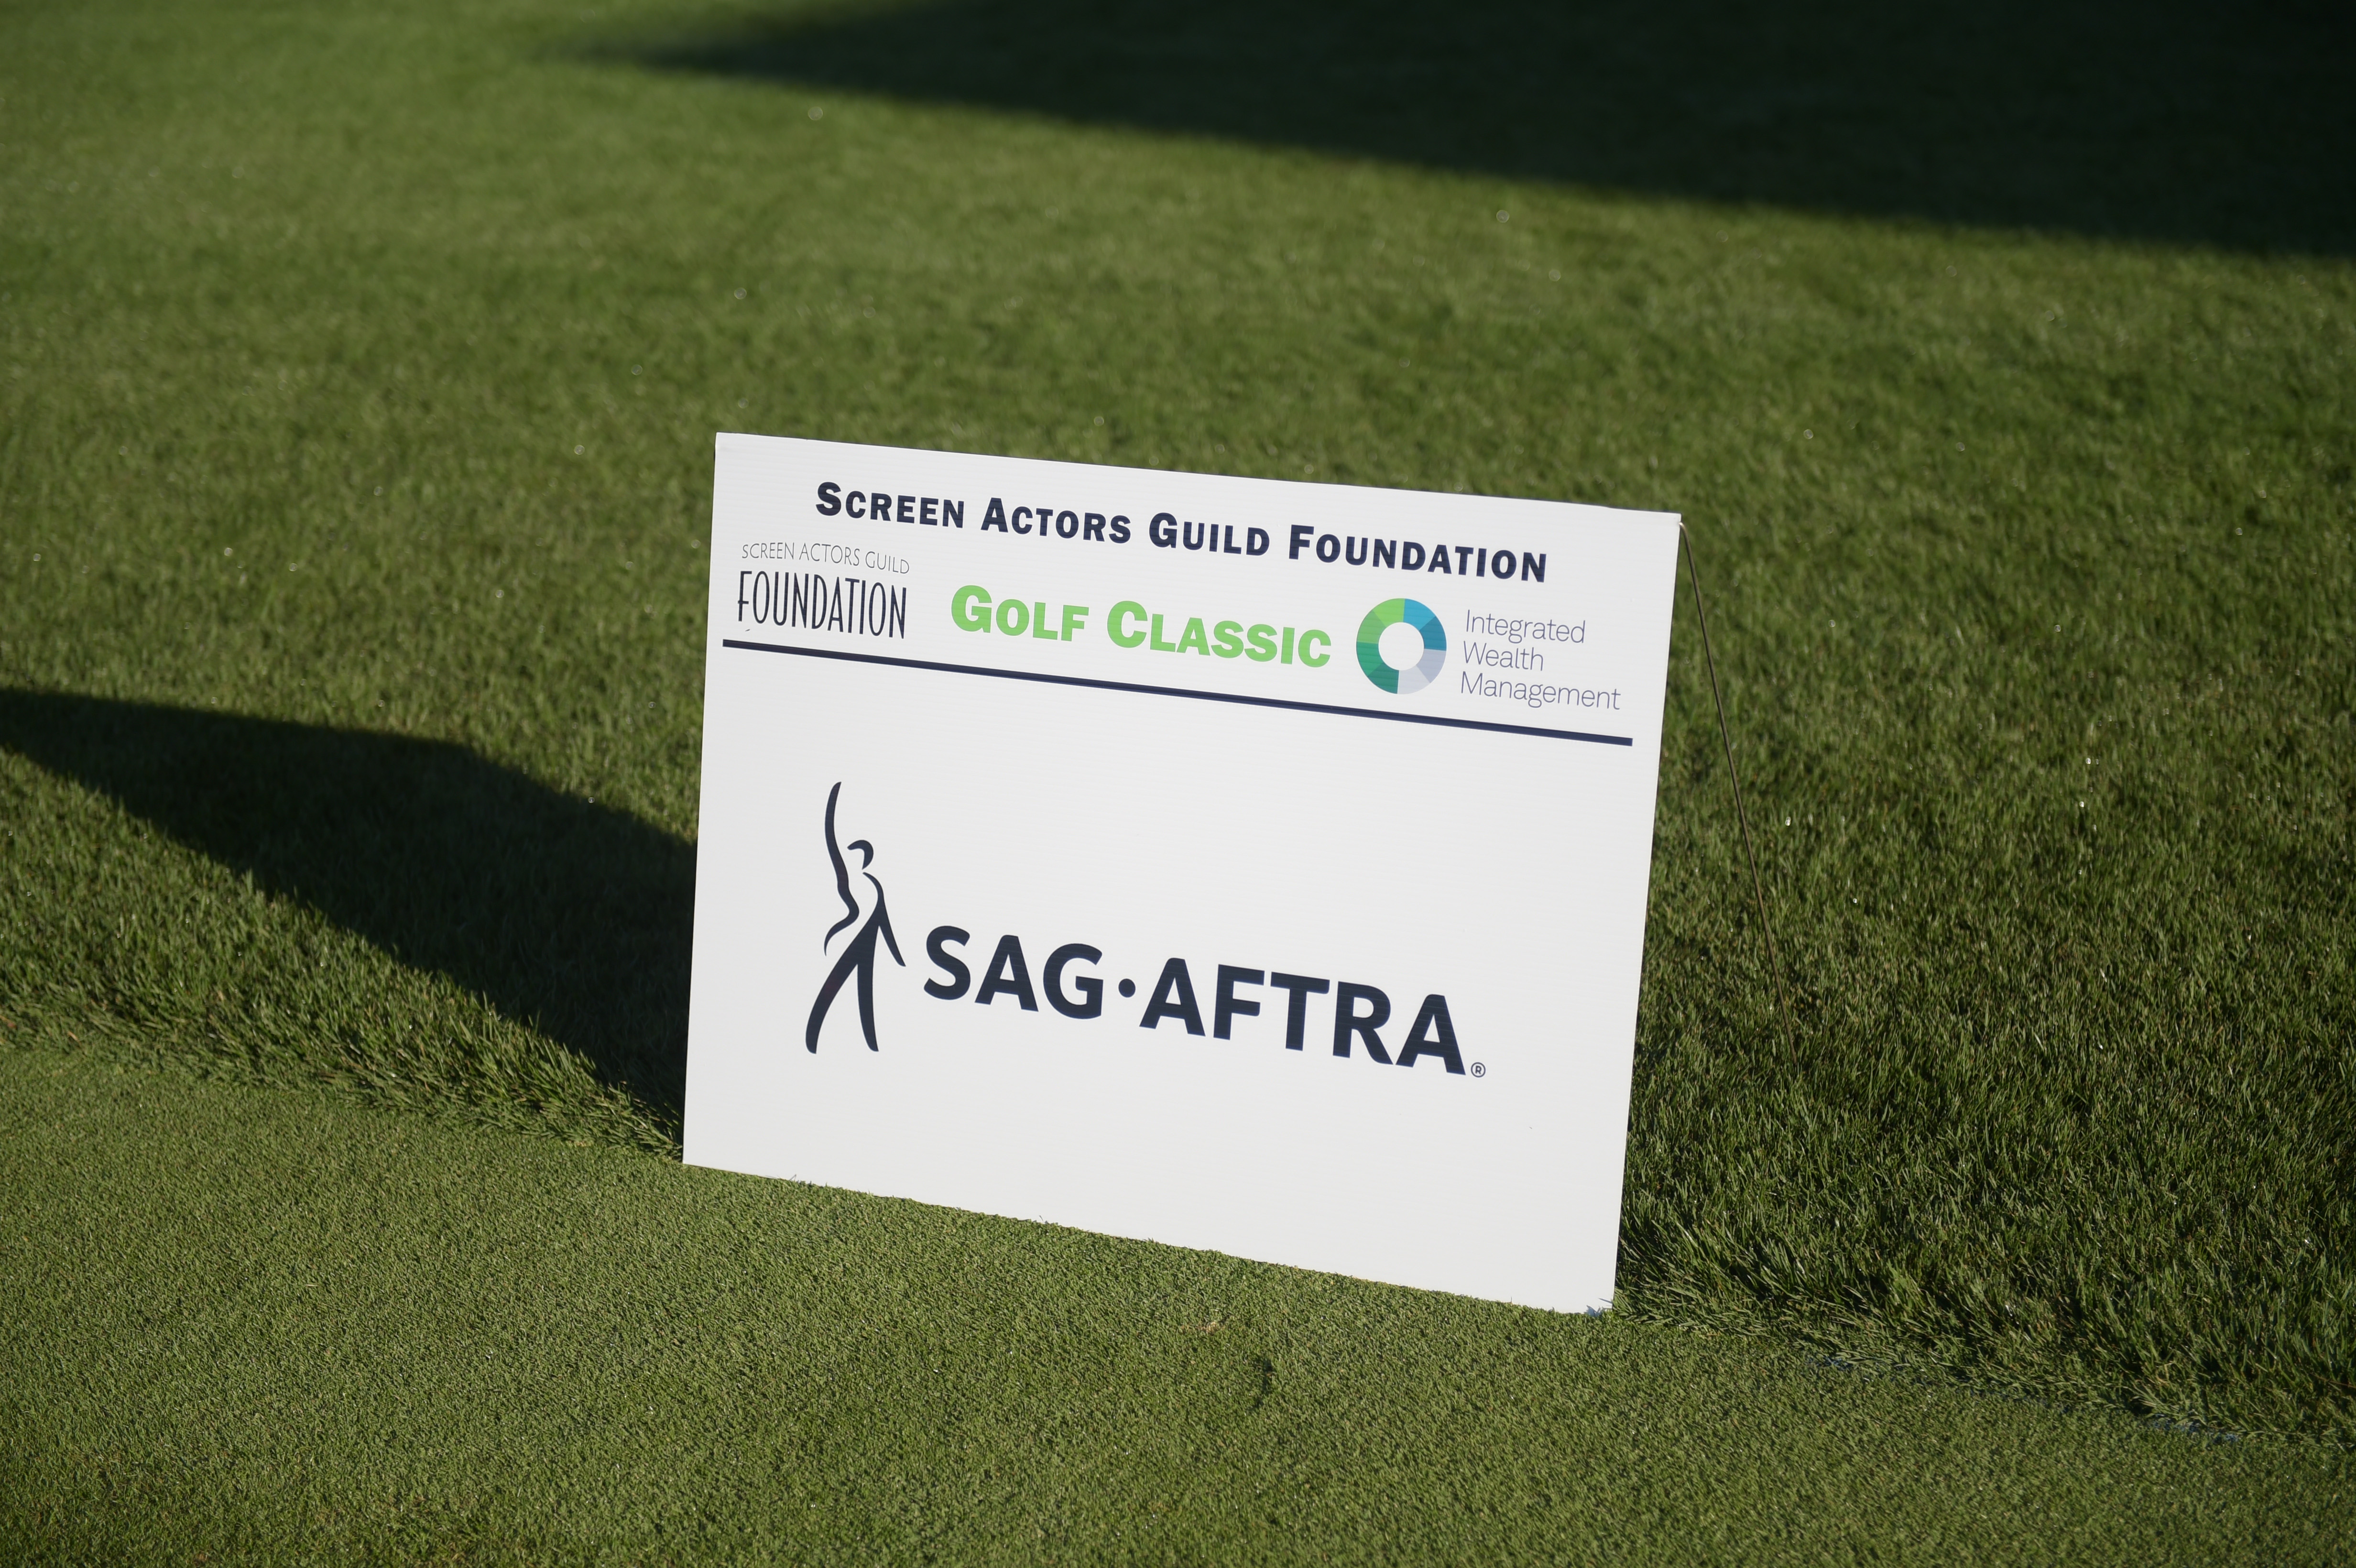 SAG-AFTRA sponsors The Screen Actors Guild Foundation's 6th Annual Los Angeles Golf Classic. (Photo by Jason Kempin/Getty Images for The Screen Actors Guild Foundation)